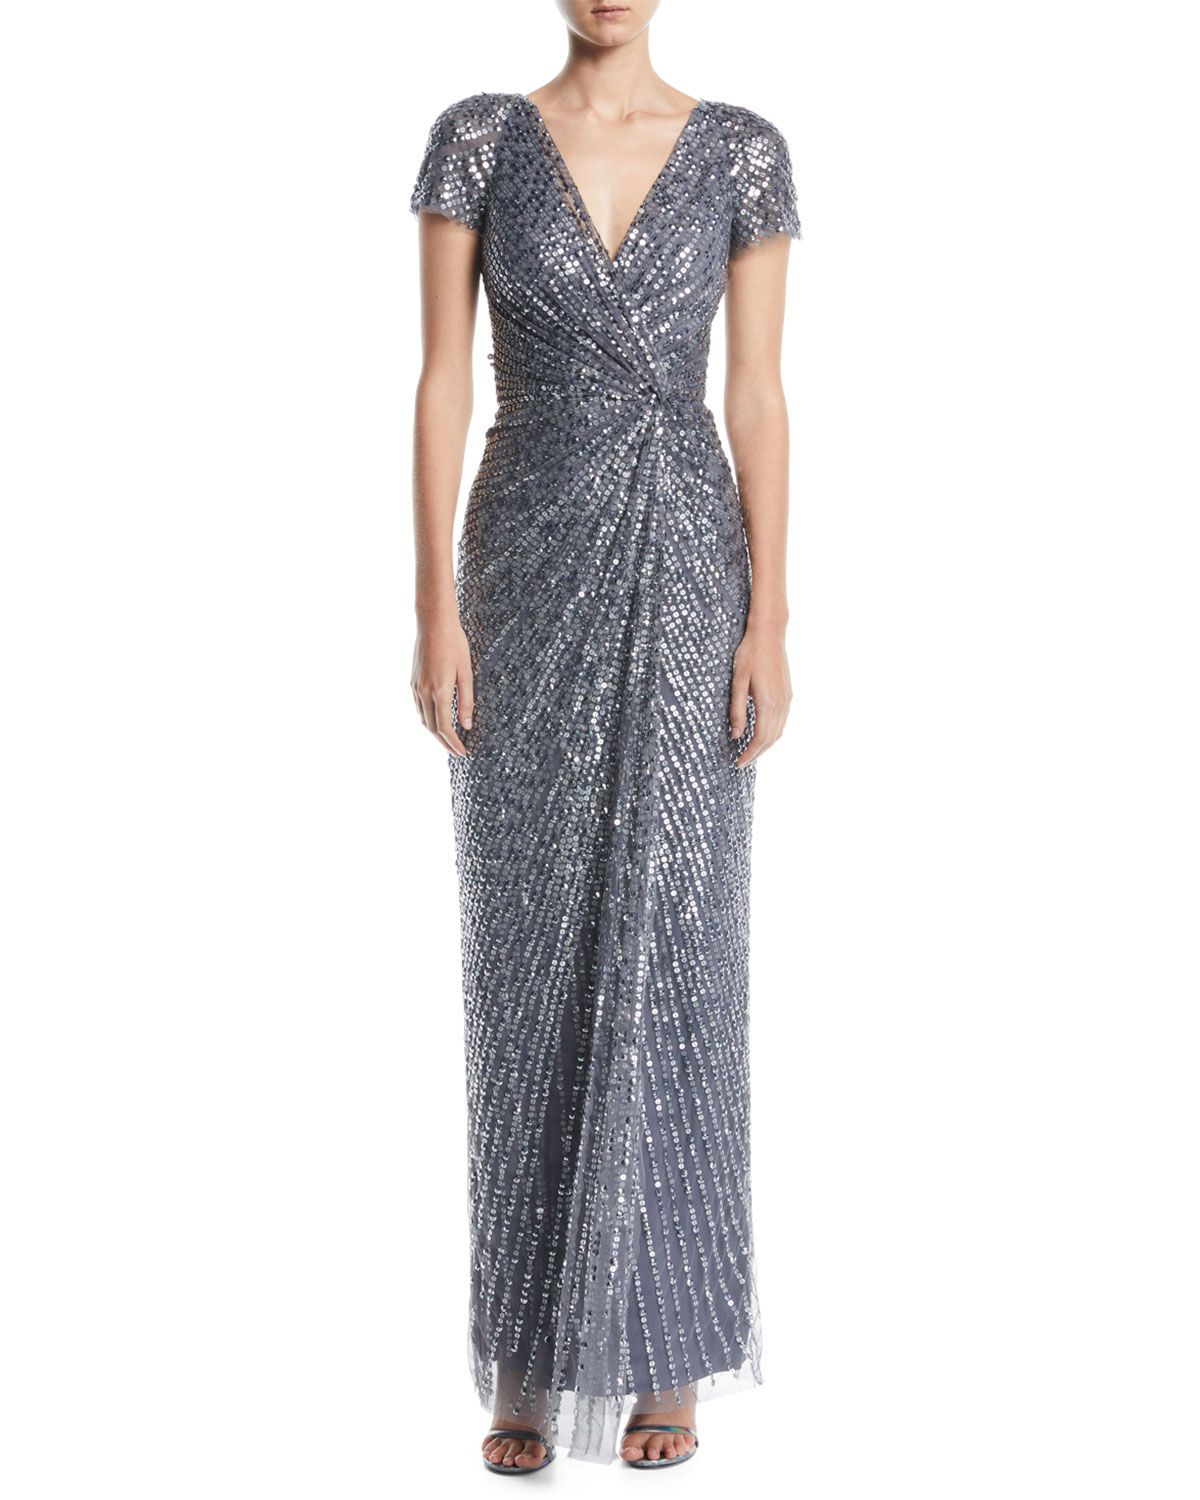 d6615436229 Jenny Packham Carina V-Neck Cap-Sleeve Gathered-Waist Sequin Beaded Evening  Gown